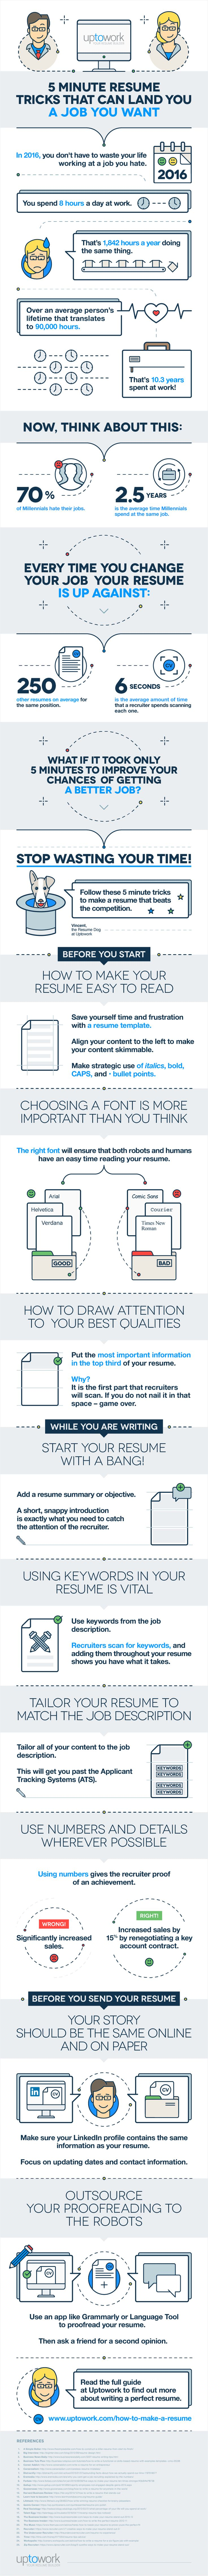 The Five Minute Hacks to Improve Your Resume Infographic presents 5-minute tricks to help you write a resume that will make you stand out.